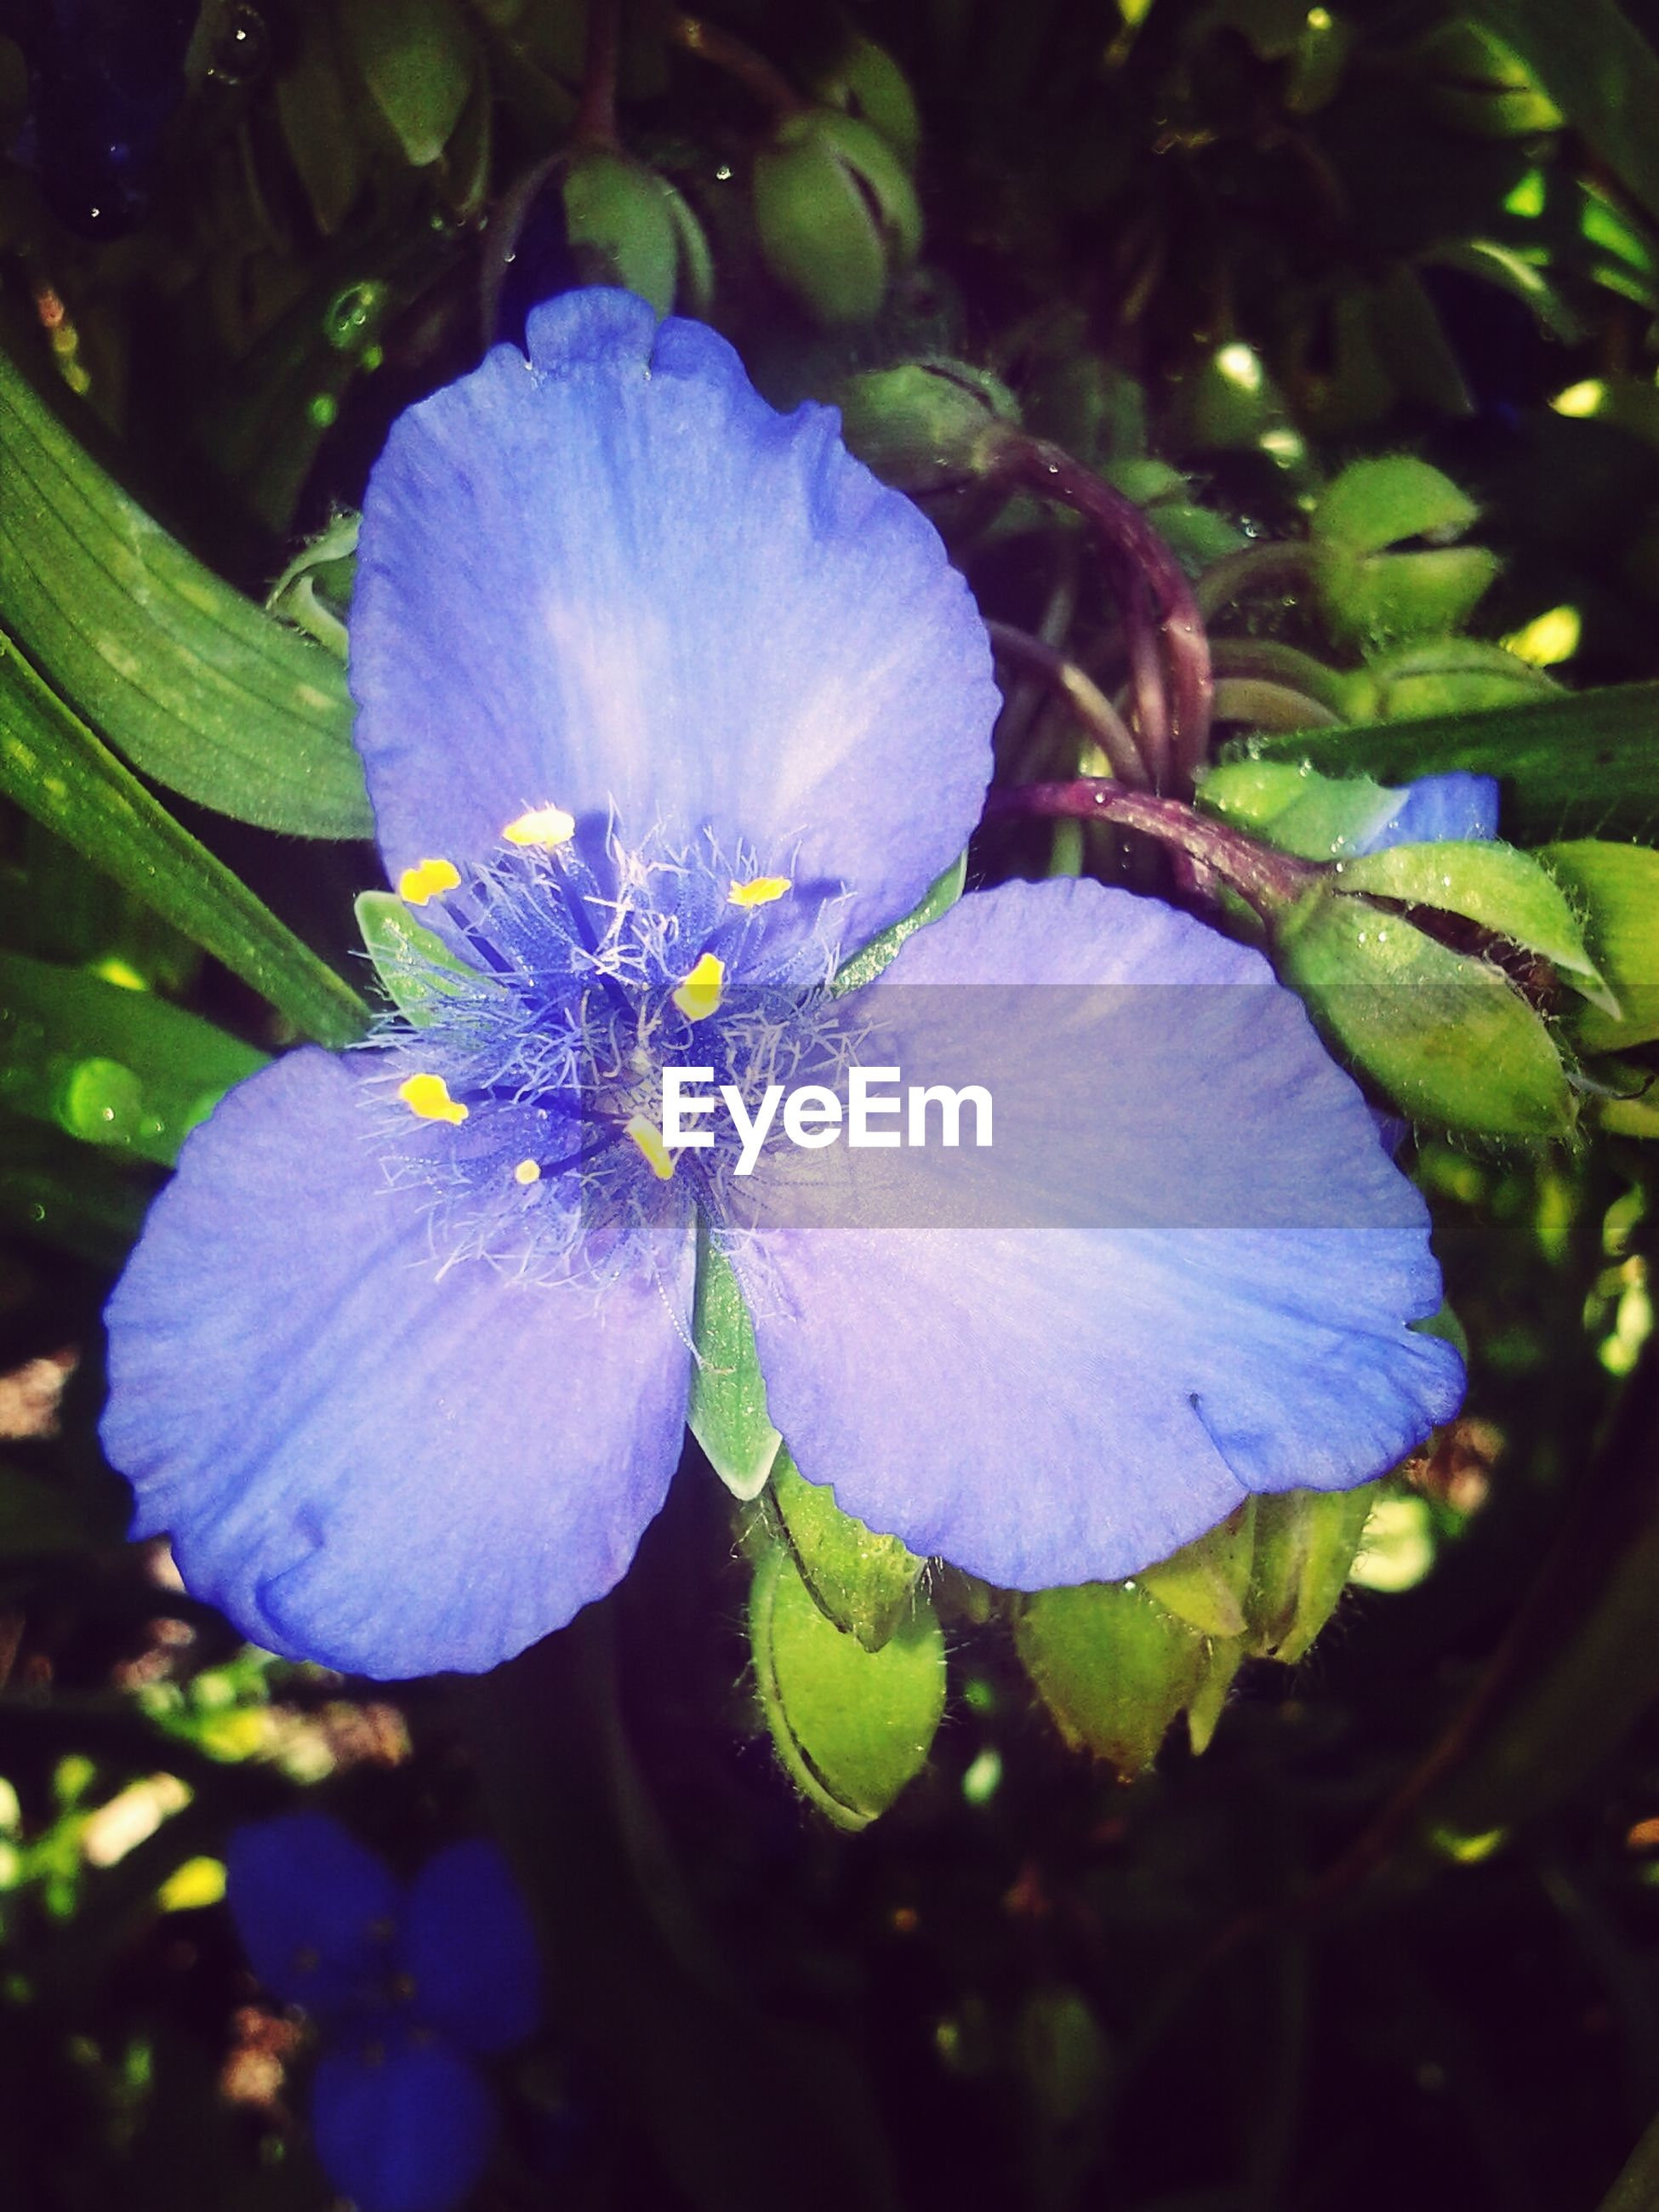 flower, petal, freshness, fragility, flower head, growth, beauty in nature, close-up, blooming, single flower, nature, plant, pollen, purple, leaf, water, focus on foreground, in bloom, blue, outdoors